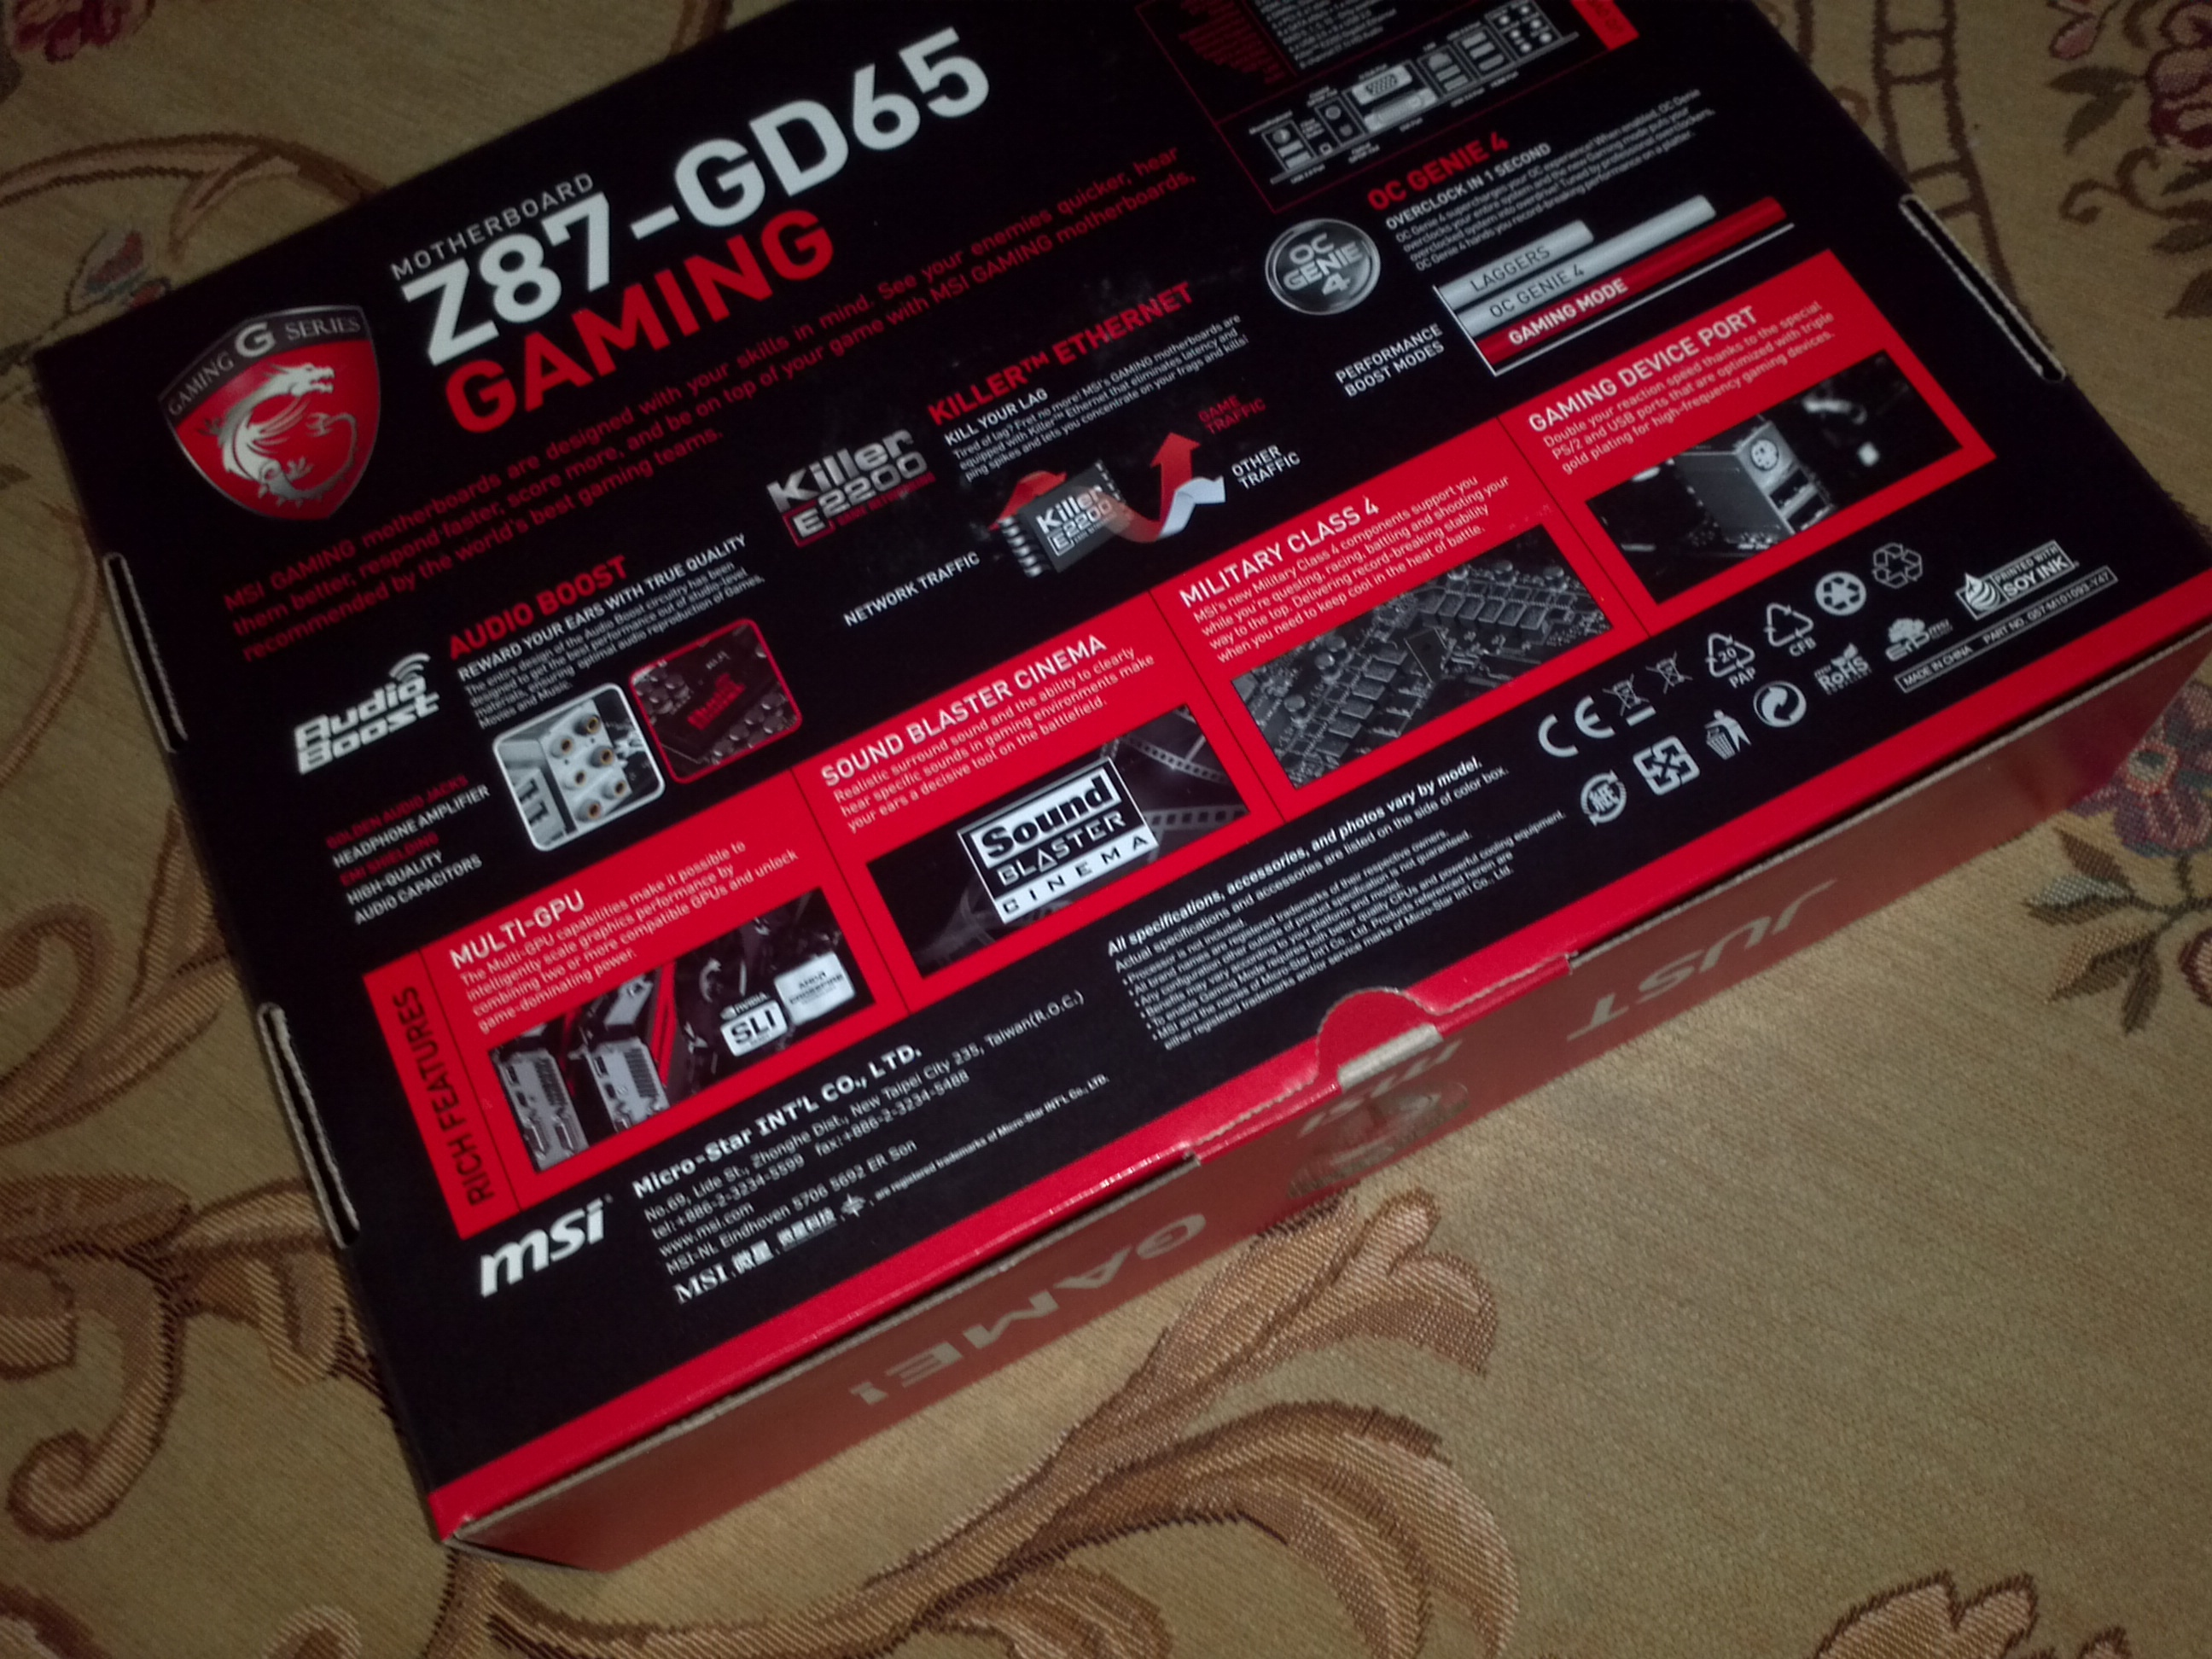 MSI Z87-GD65 Gaming Motherboard Pictured and Detailed